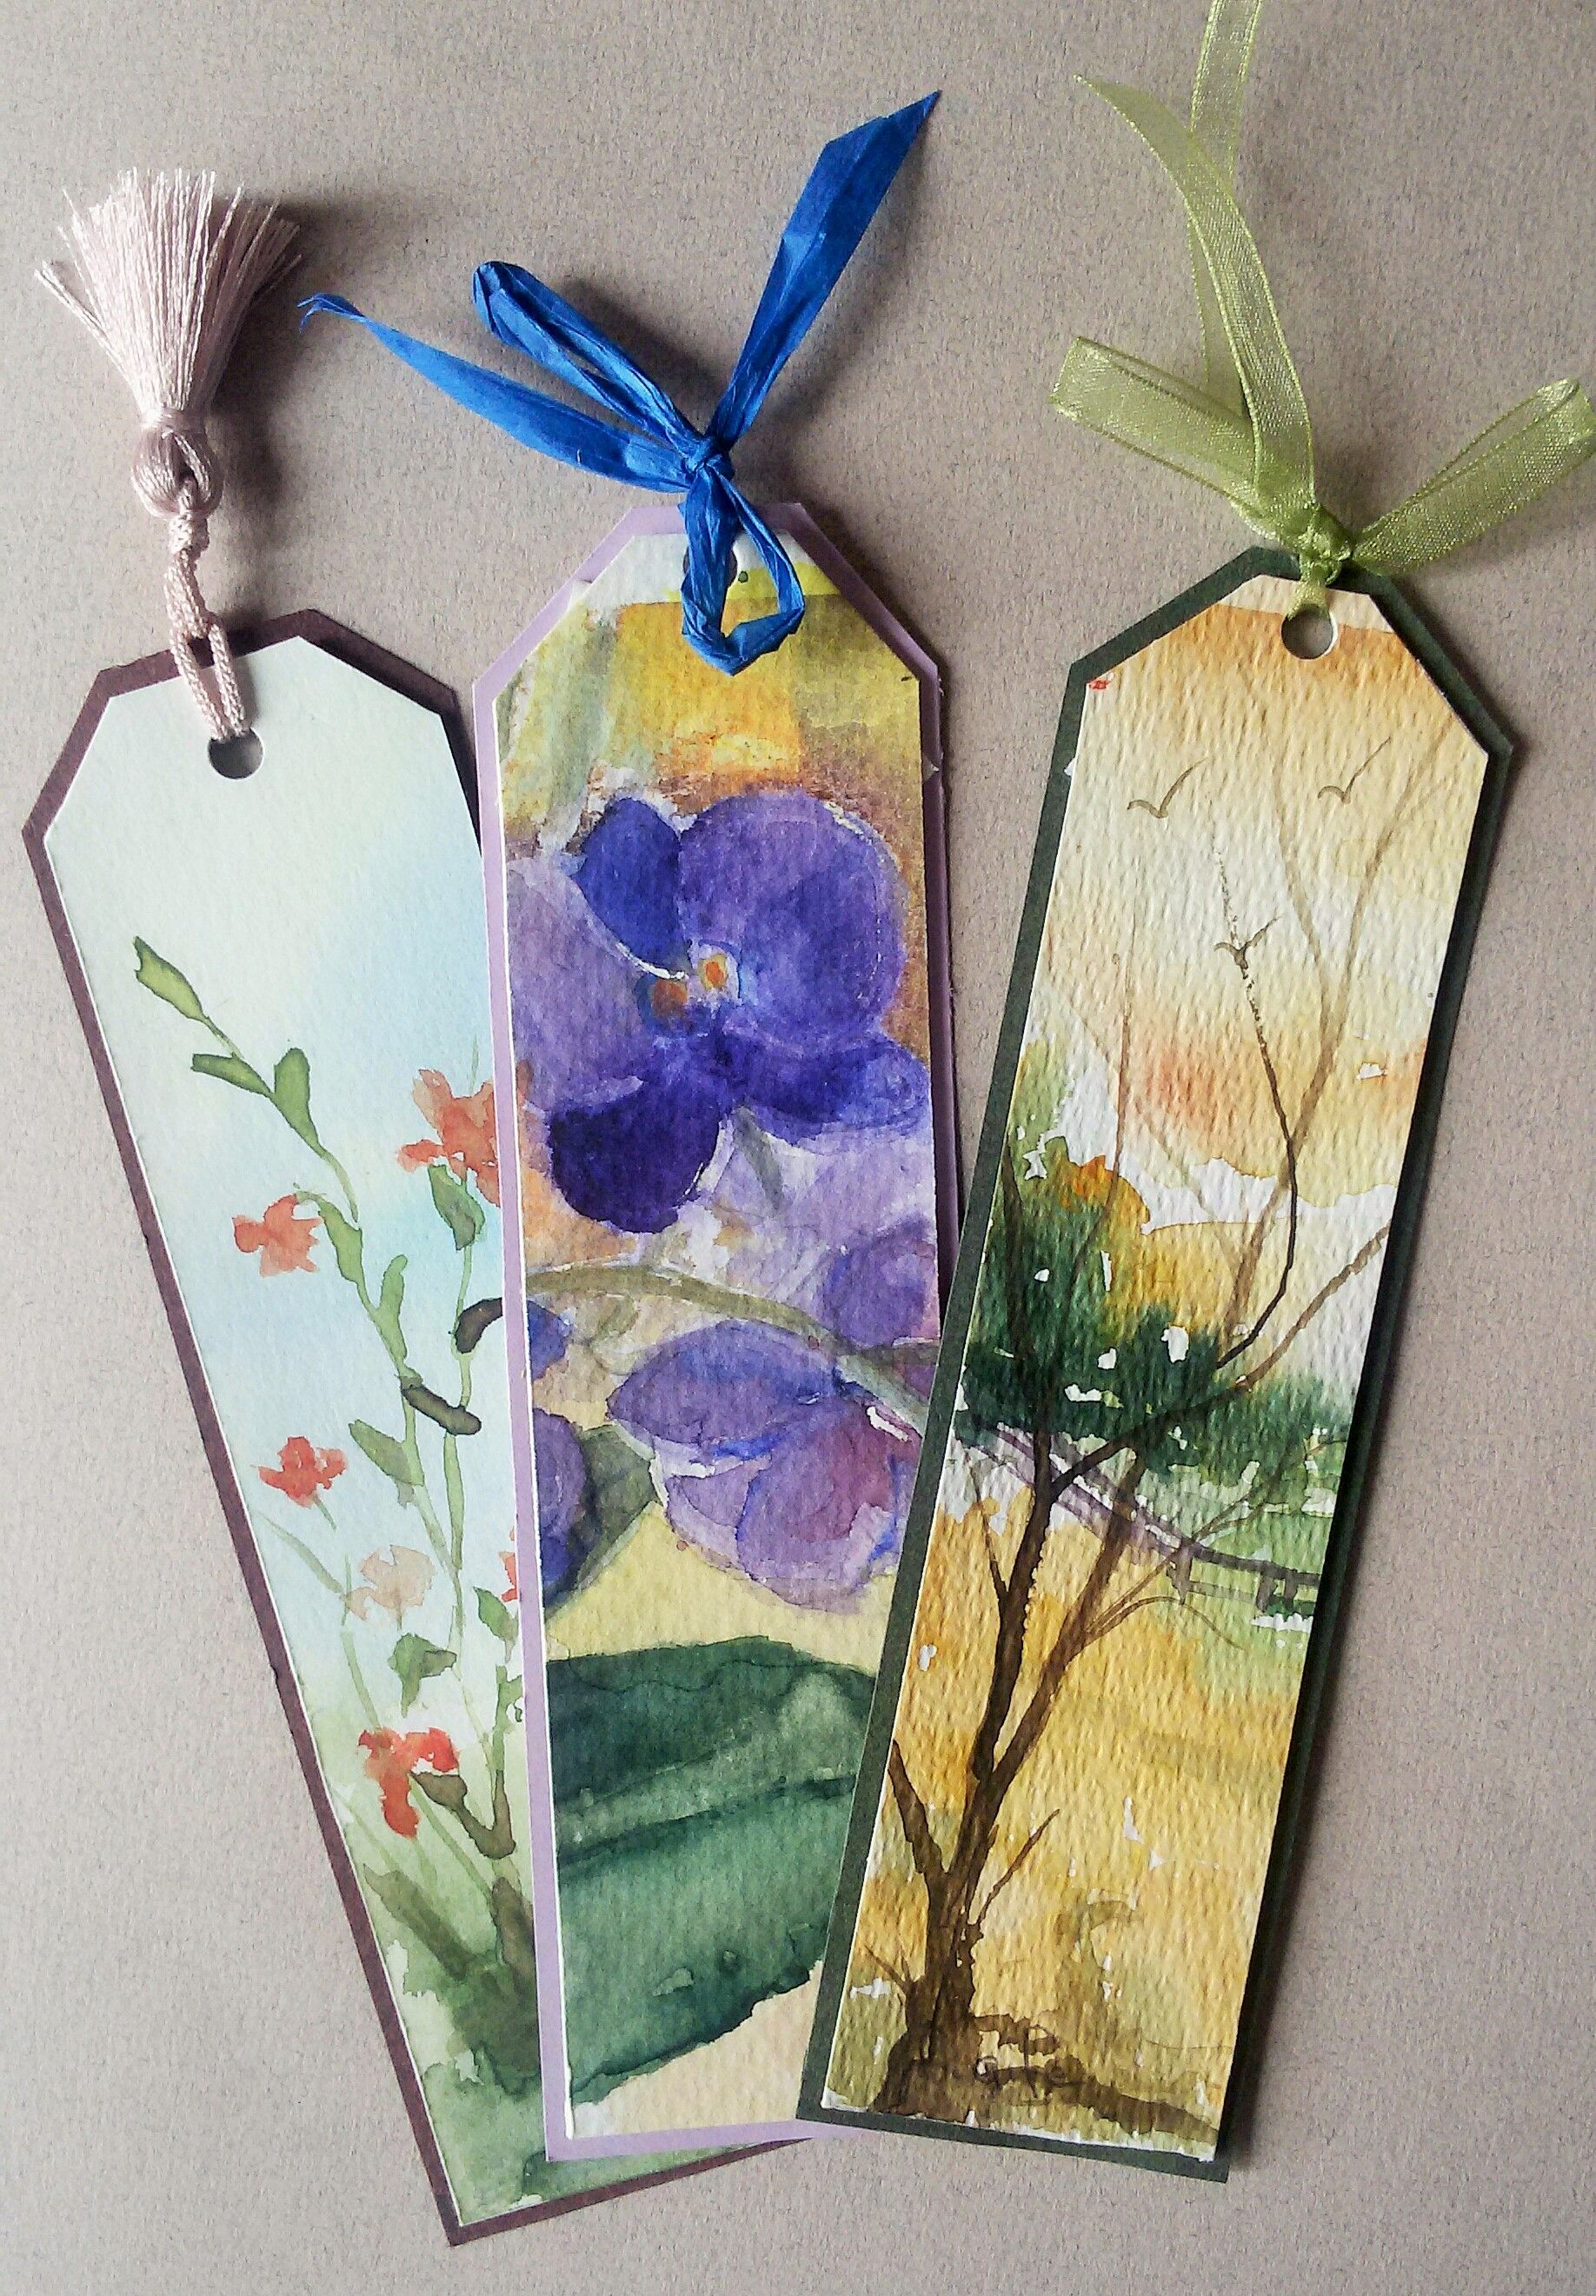 Watercolor bookmarks - Orijinal Kitap Ayra Lar Watercolor Original Handmade Hantpaint Bookmarks